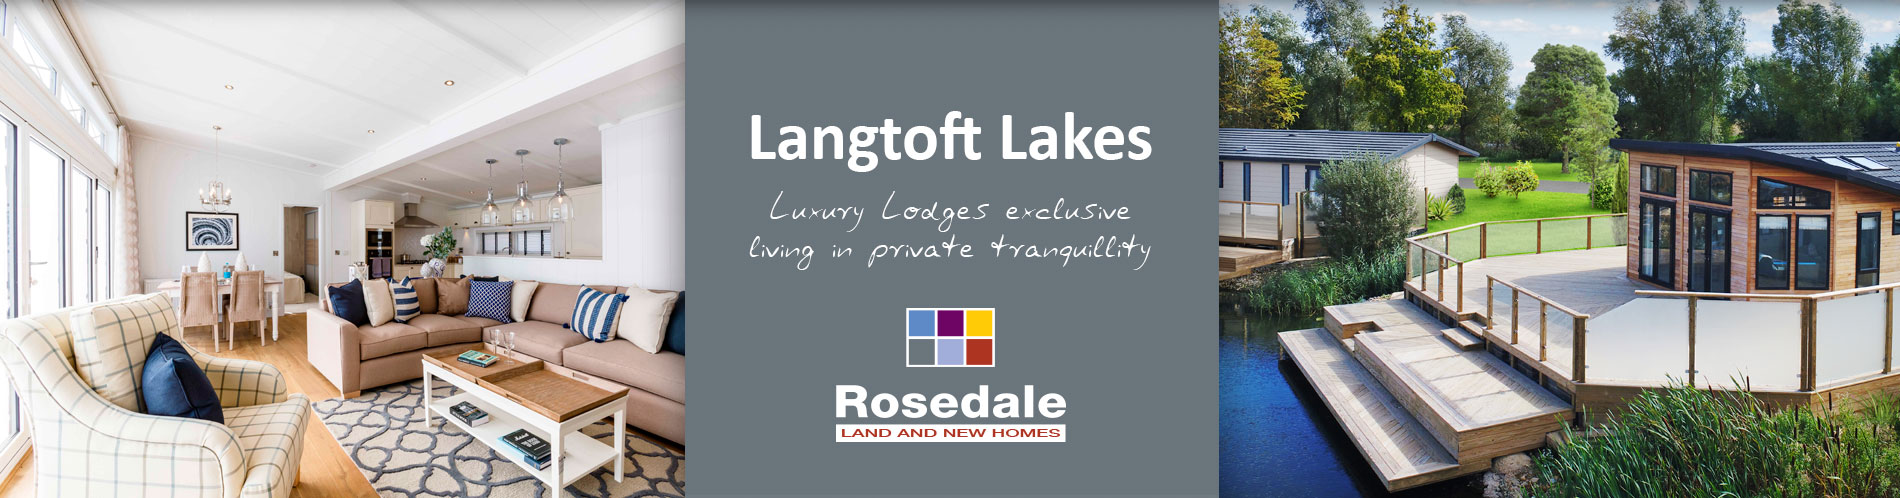 Langtoft Lakes Luxury Lodges